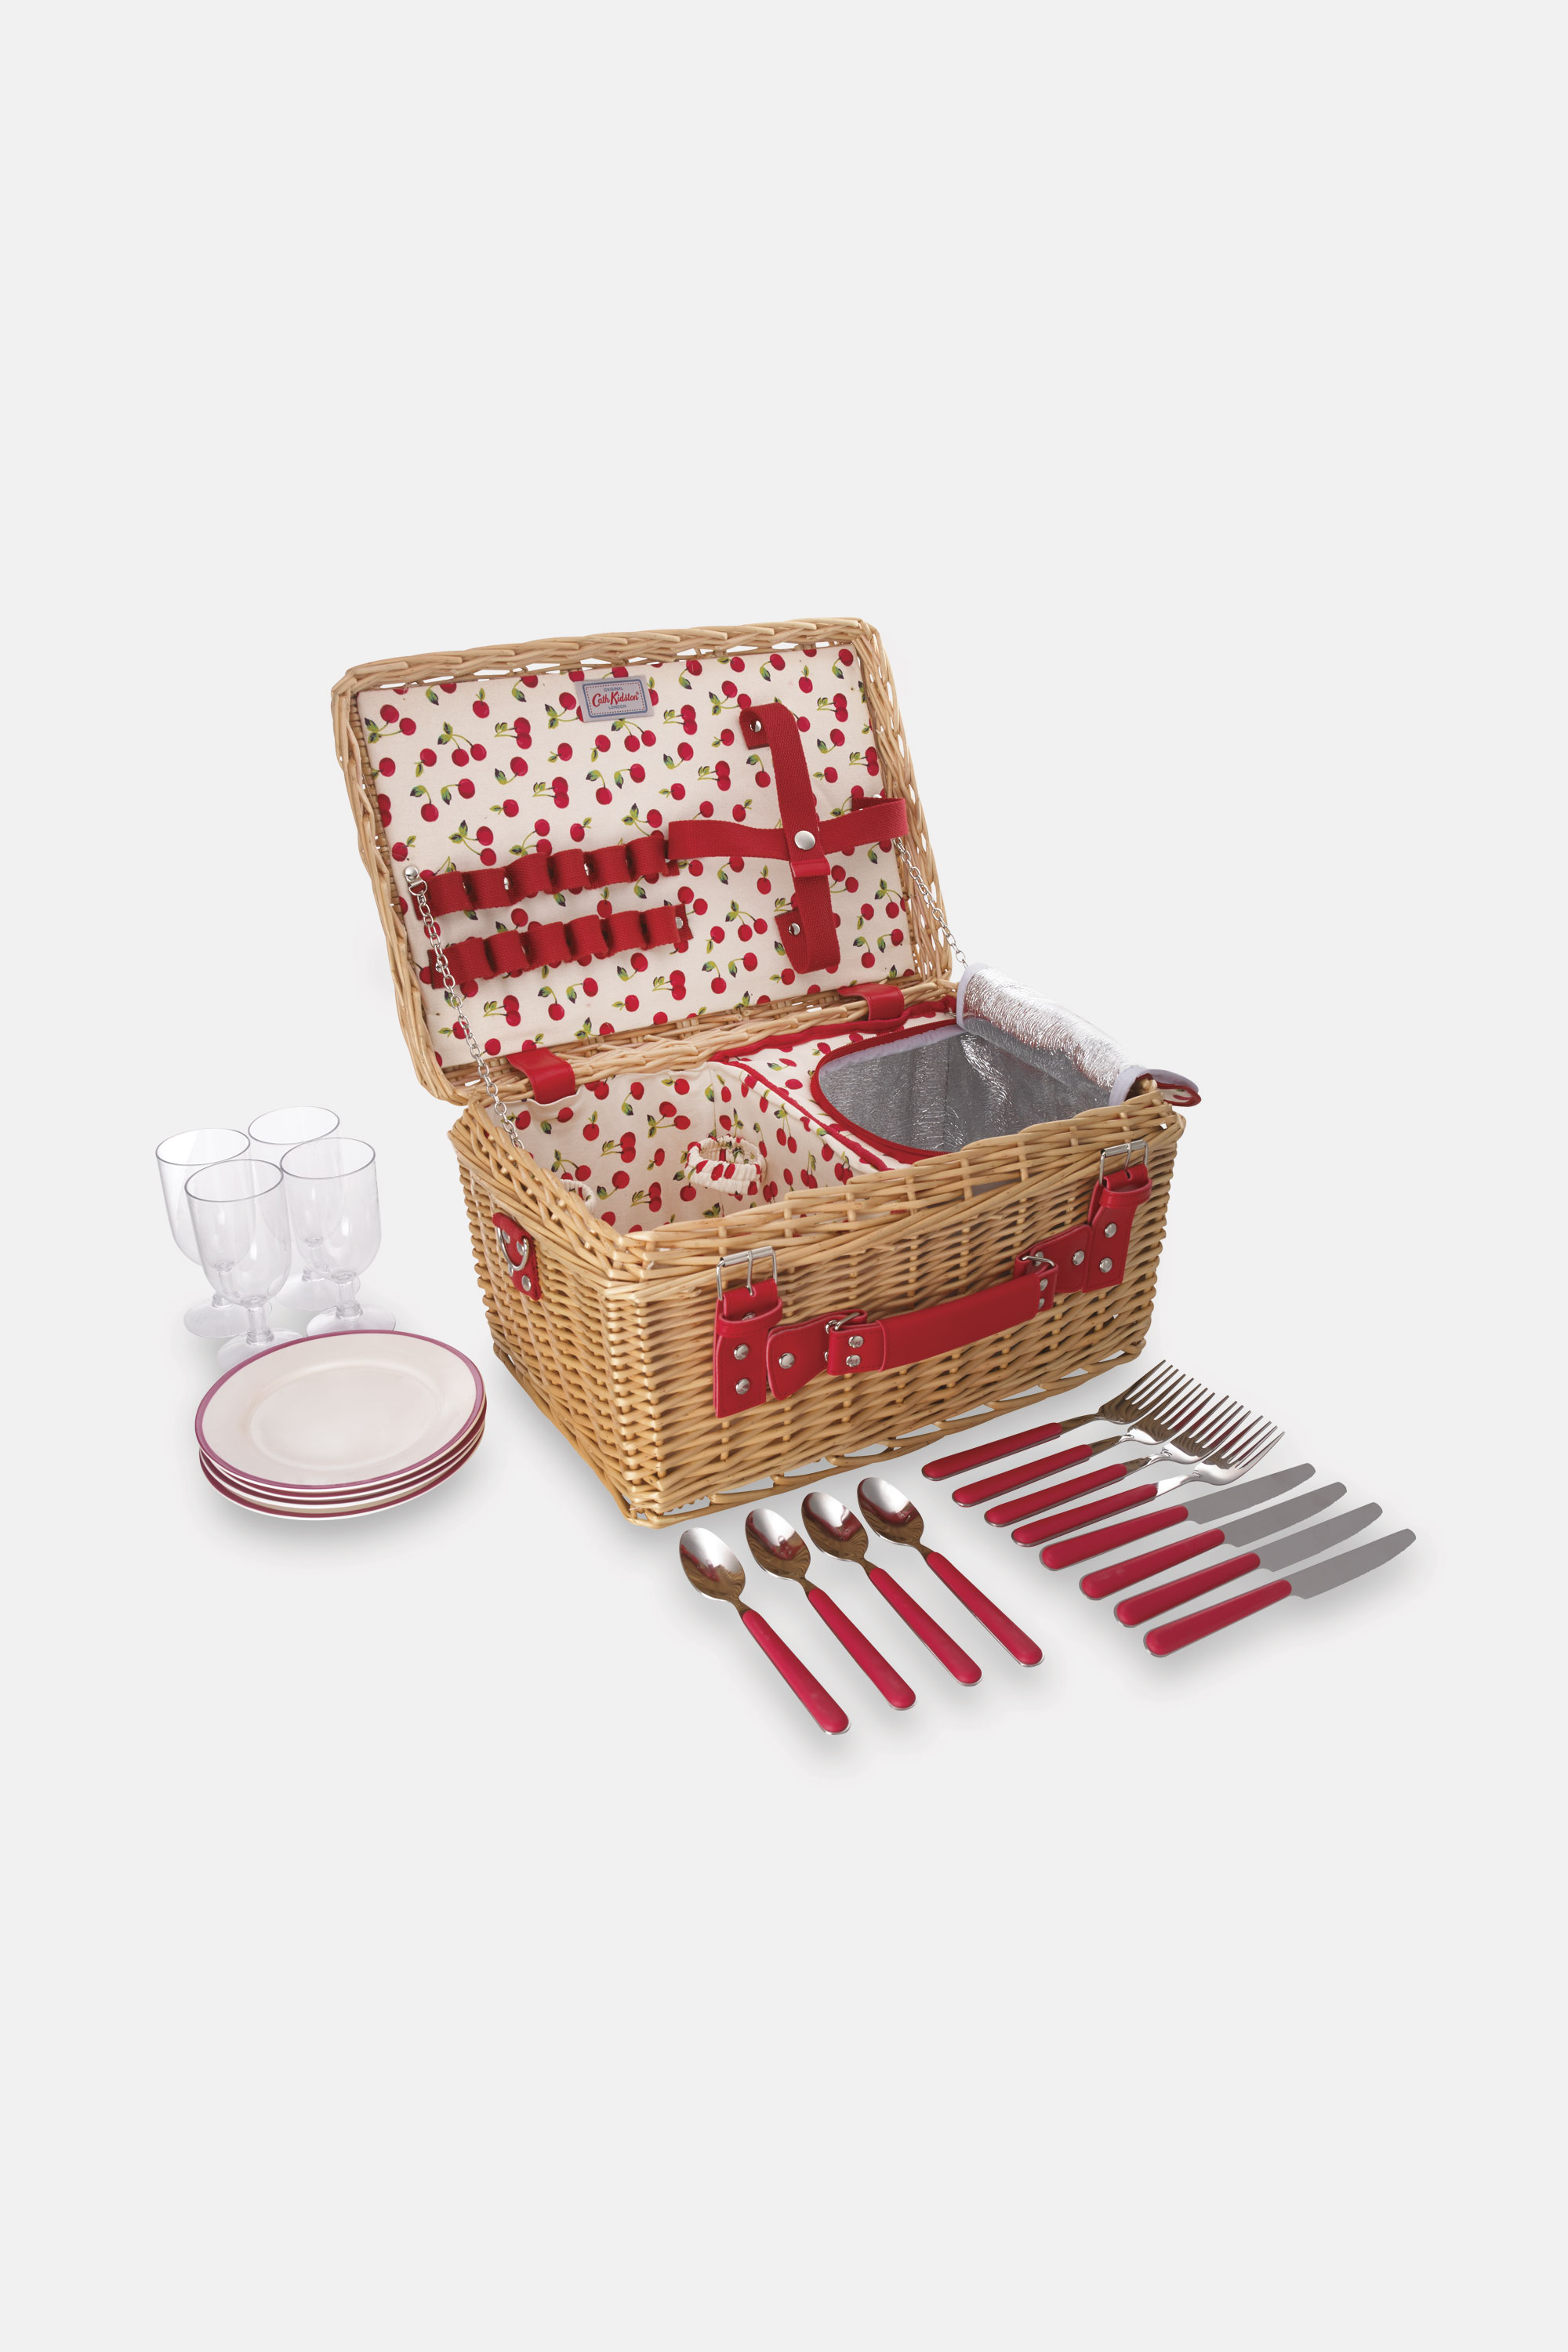 Cath Kidston Cherries Picnic Basket in Ivory, Willow